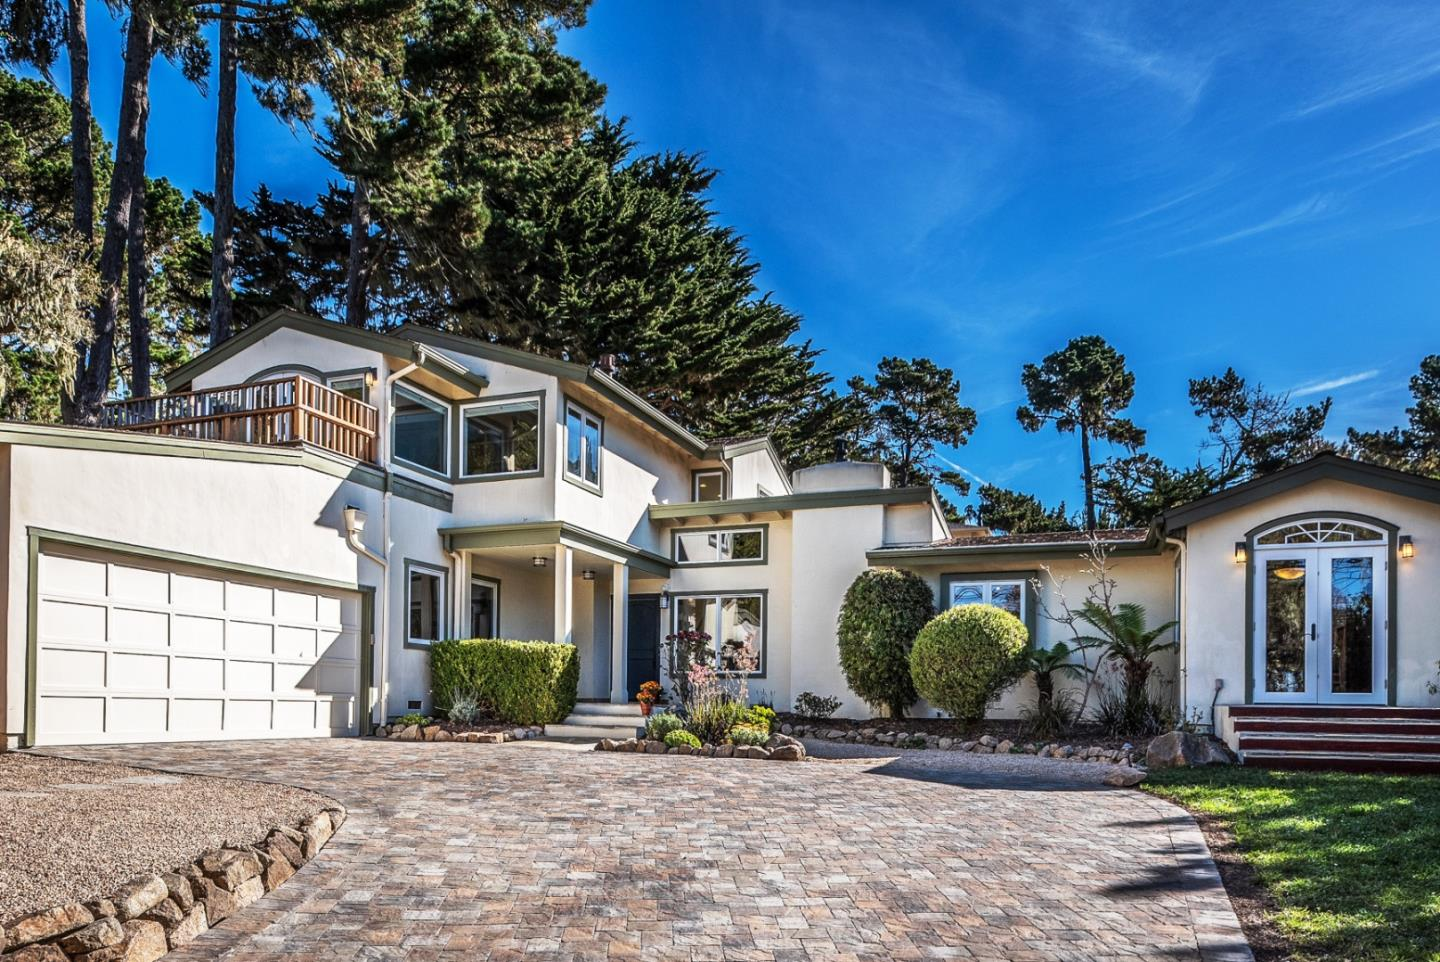 Detail Gallery Image 1 of 40 For 3075 Sloat Rd, Pebble Beach, CA, 93953 - 4 Beds | 2 Baths